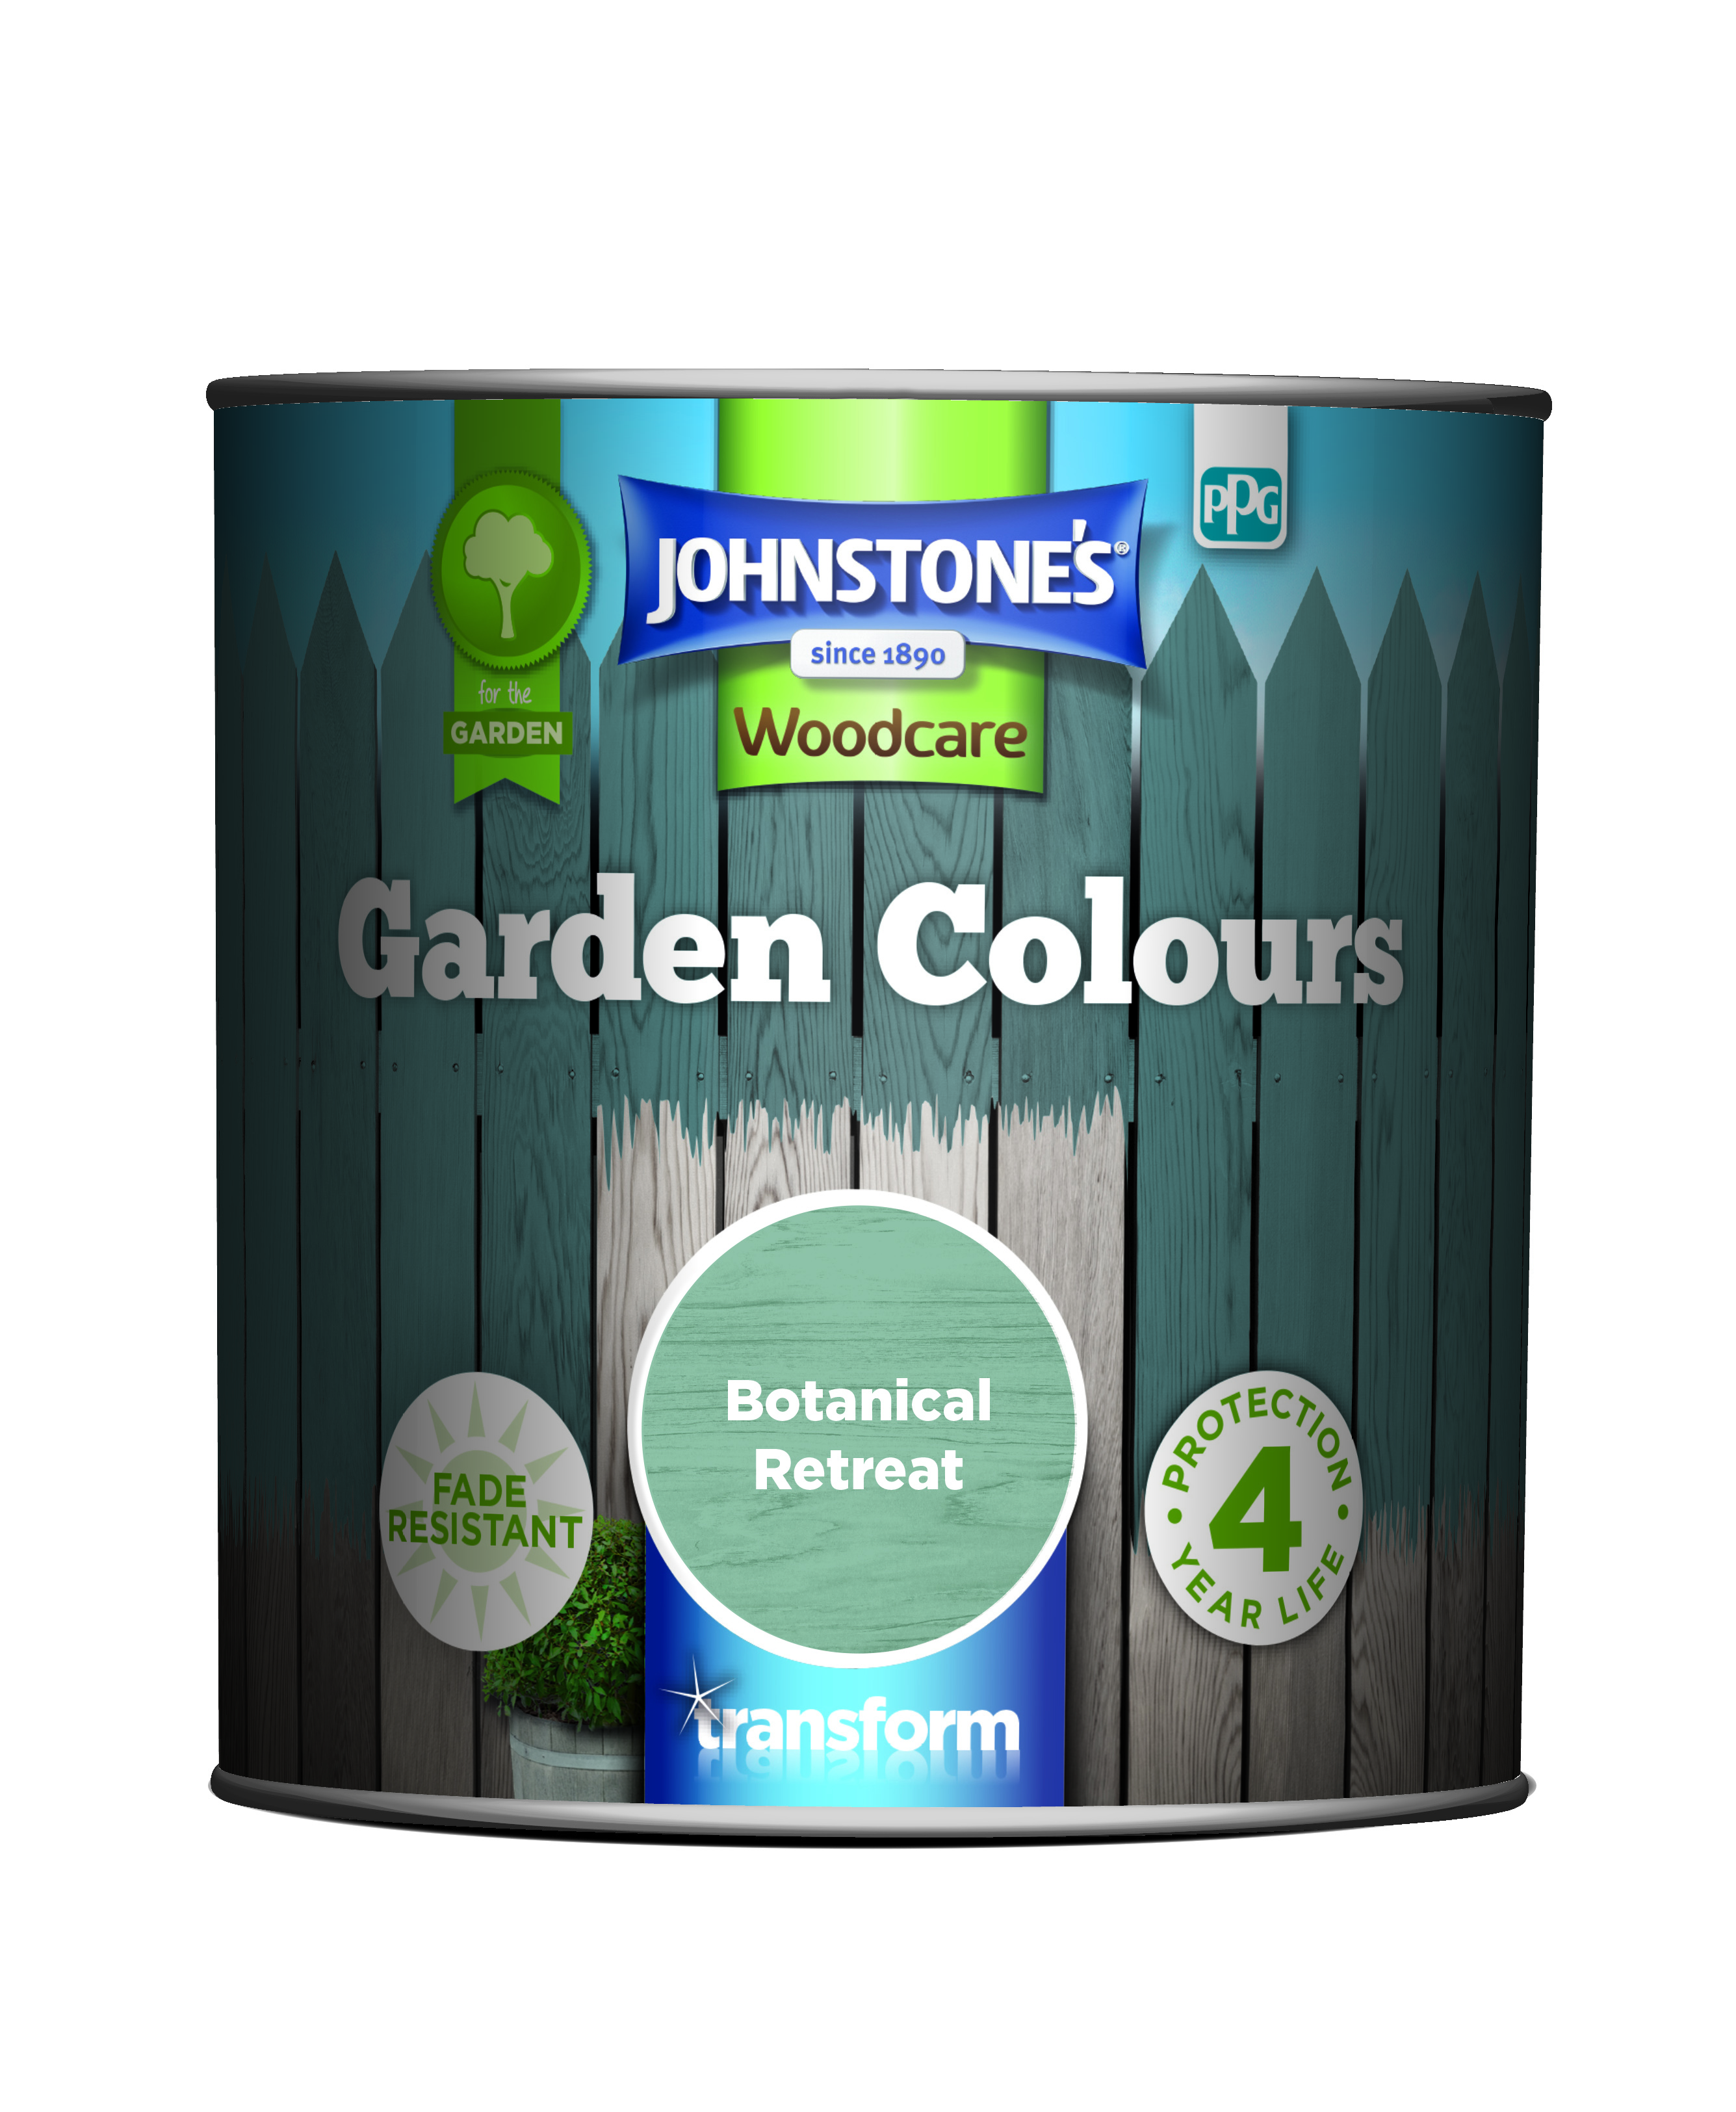 Johnstone's Garden Colours Botanical Retreat 1l